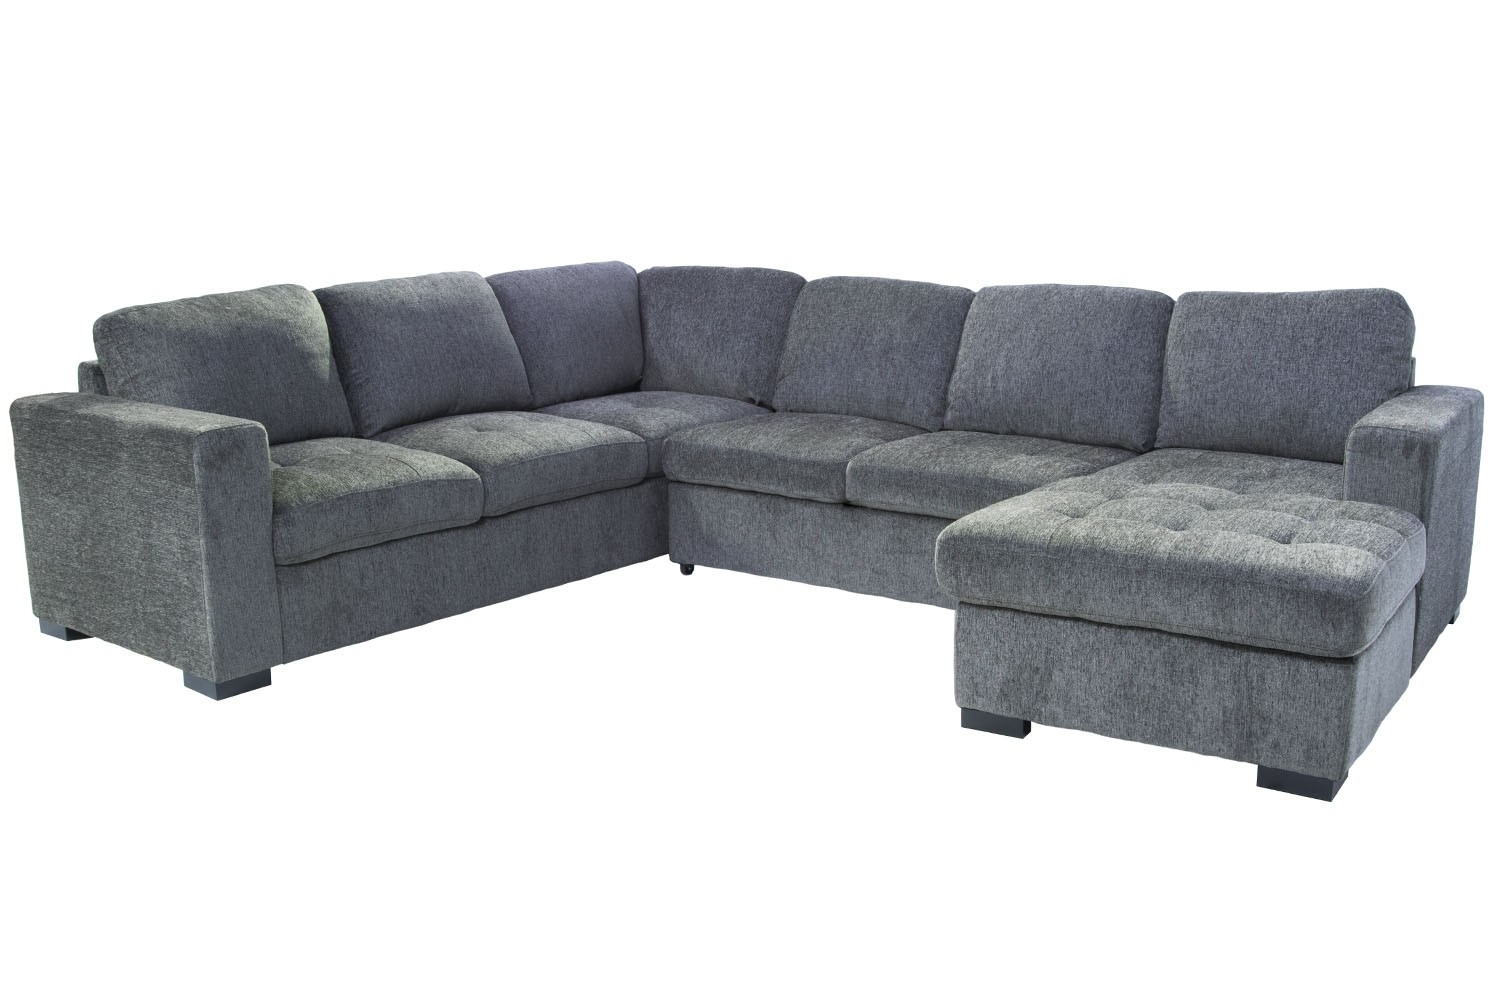 Sectional Sofas | Save Mor Online And In-Store inside Marcus Chocolate 6 Piece Sectionals With Power Headrest and Usb (Image 19 of 30)